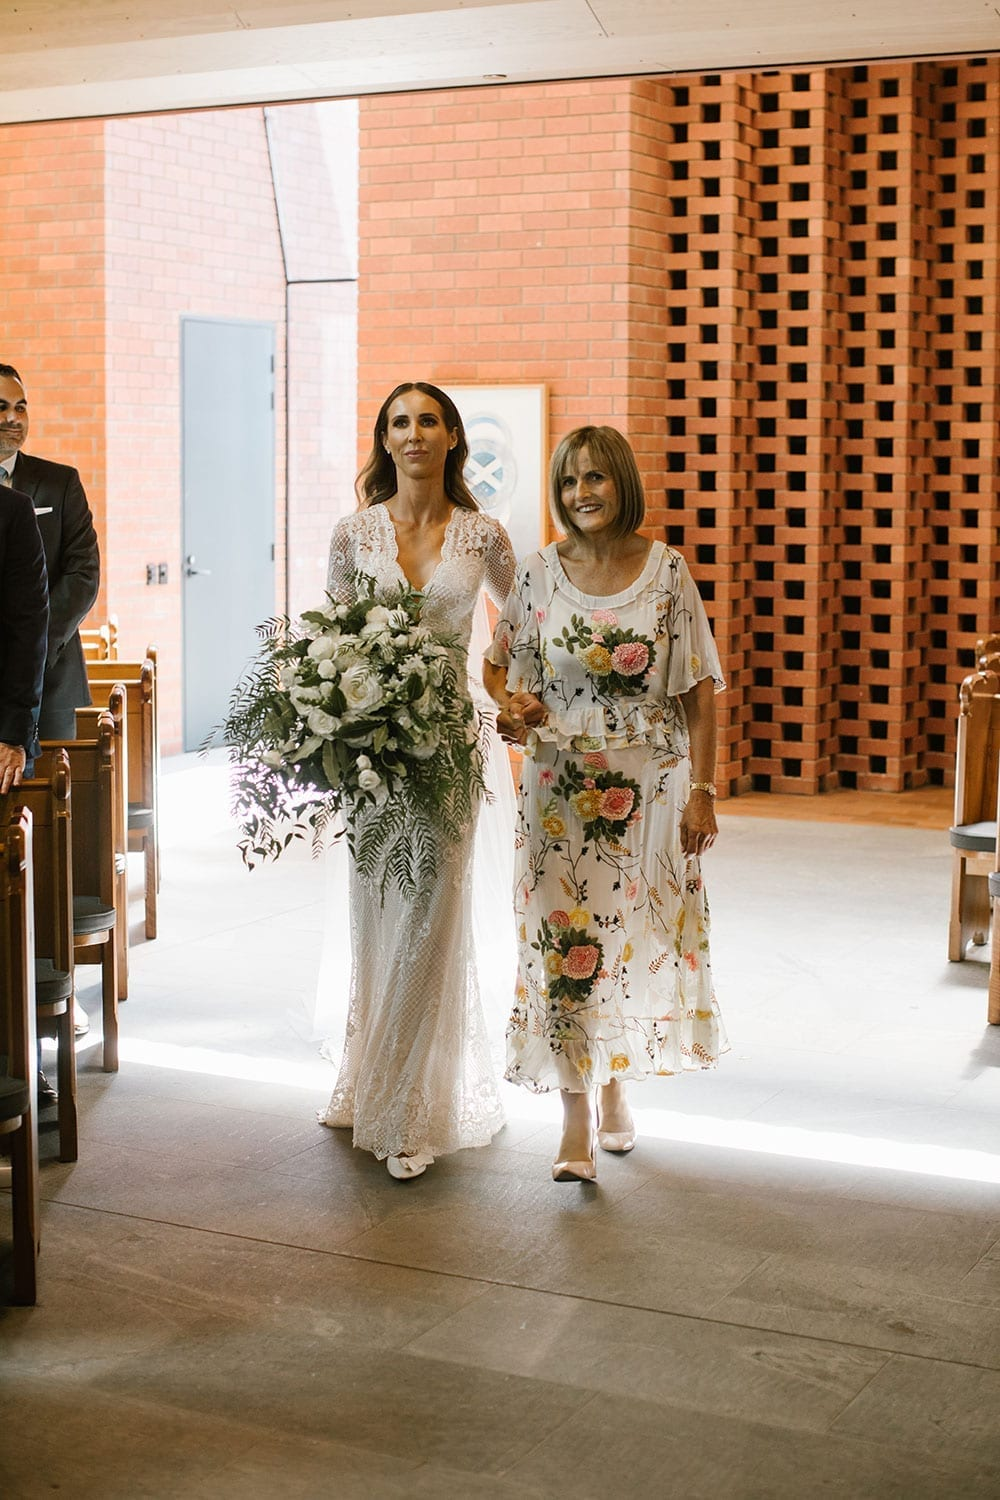 Vinka Design Features Real Weddings - Bride in bespoke fitted lace gown walking down aisle